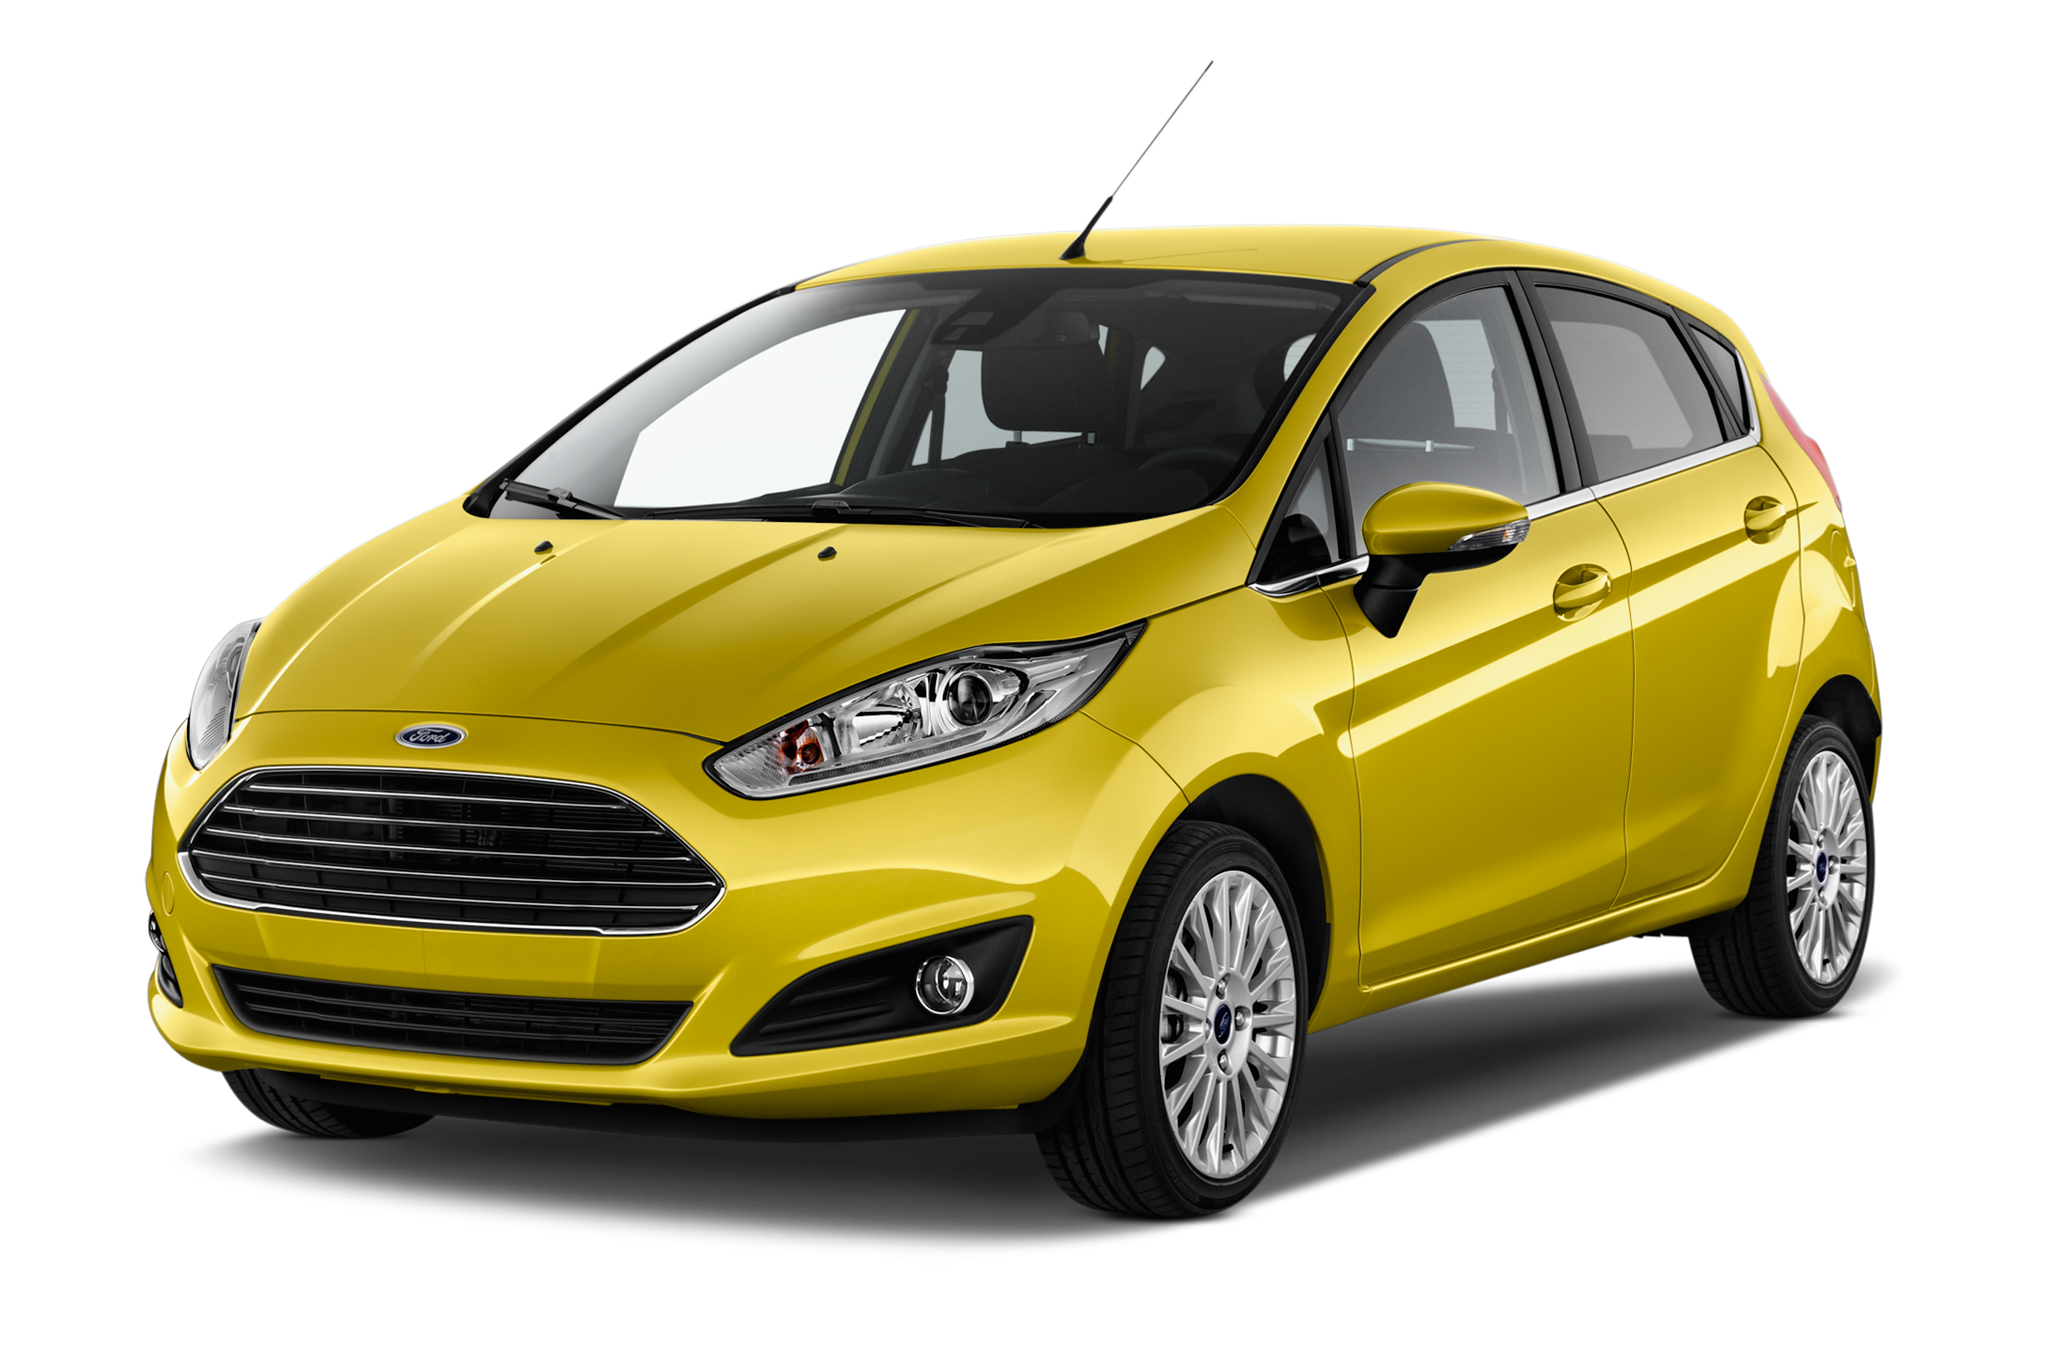 2019 Ford Falcon Best Car Release And Reviews 2020 Further Razor Dune Buggy Wiring Diagram On Tesla Electric Fiesta St Concept Photos Catalog 2018